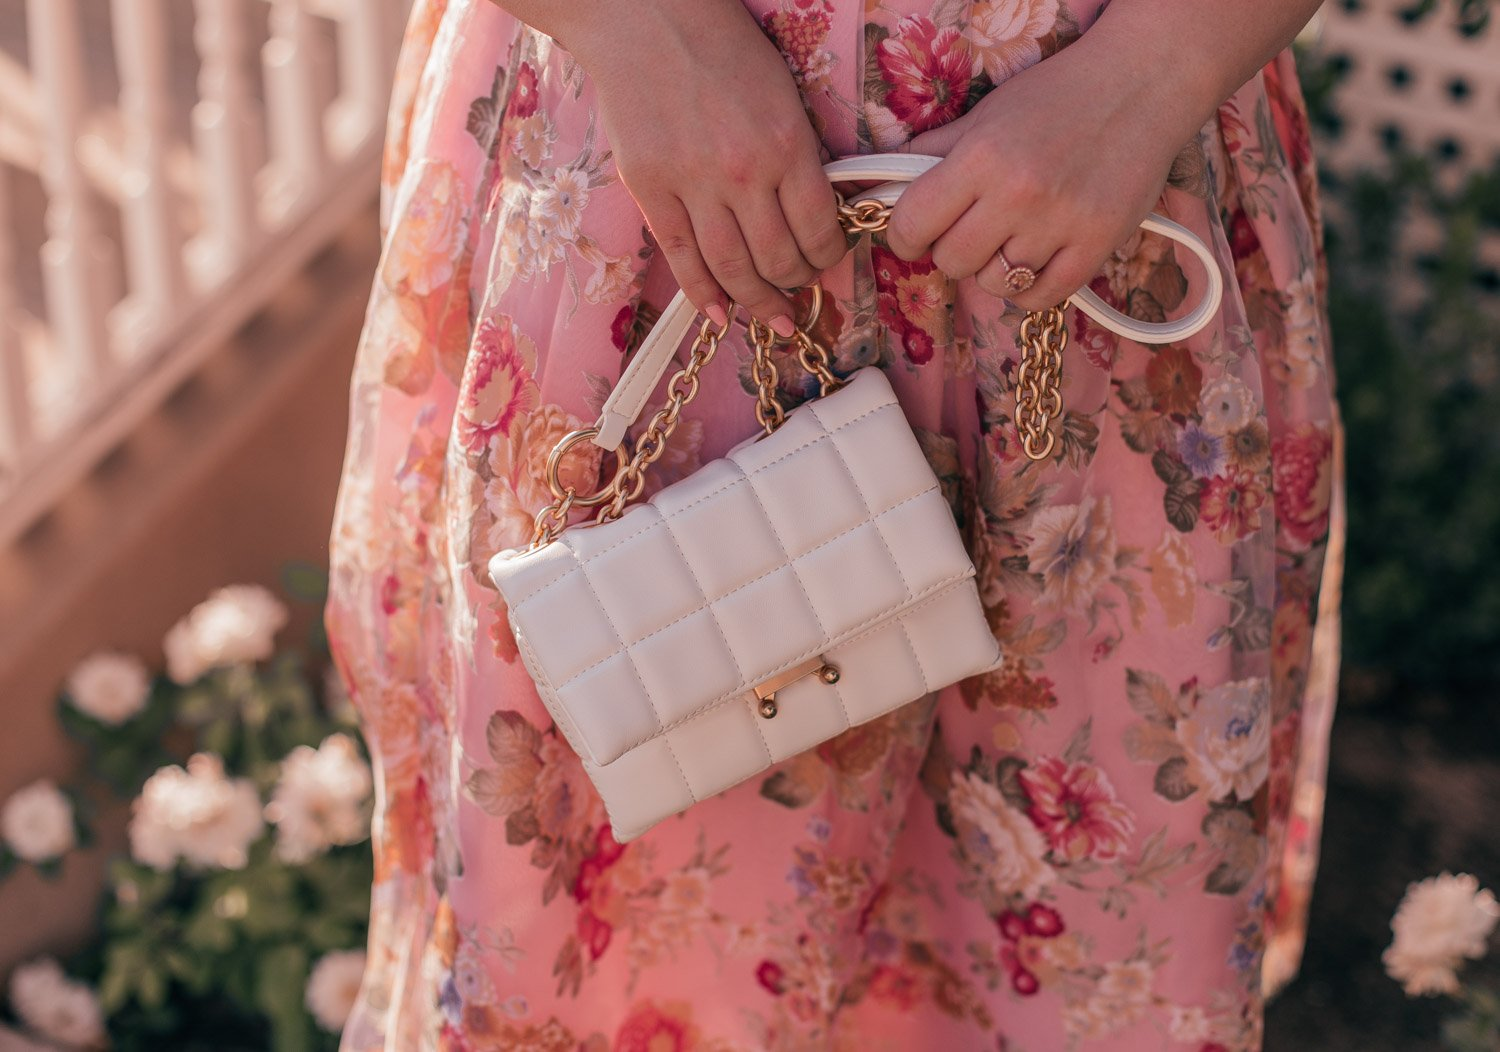 Feminine Fashion Blogger Elizabeth Hugen of Lizzie in Lace shares a feminine floral summer outfit idea including a white lace top, pink floral chicwish skirt and white house of want bag